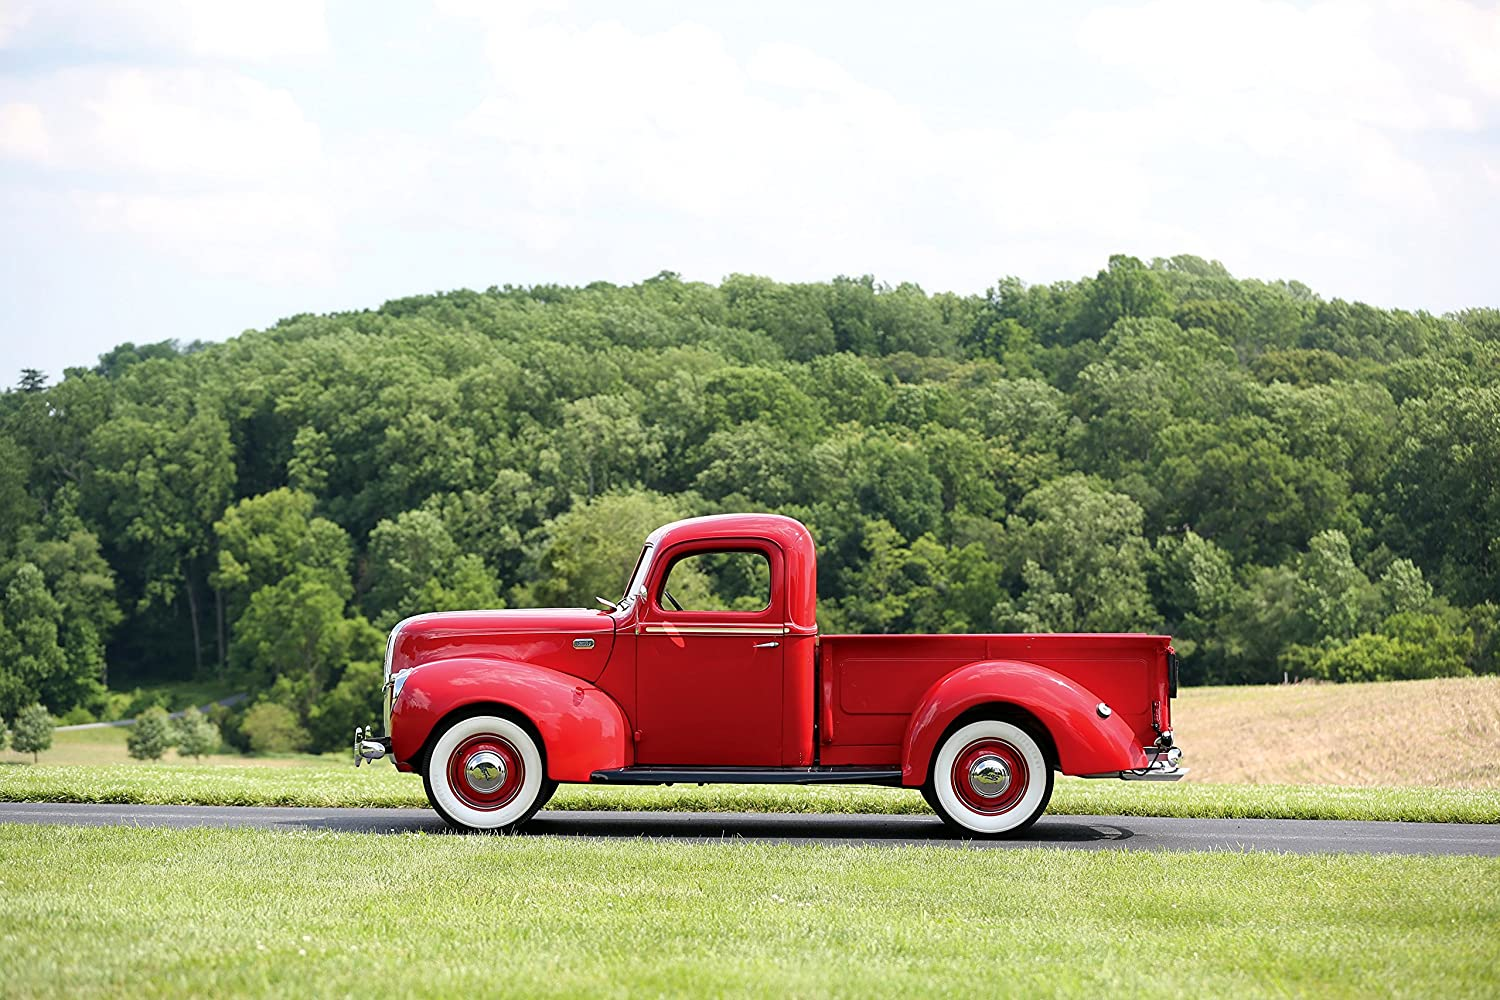 Ford Deluxe Pickup 1941 Truck Print On 10 Mil Archival Grain Satin Paper Red Front Side Static View 11x17 Posters Prints